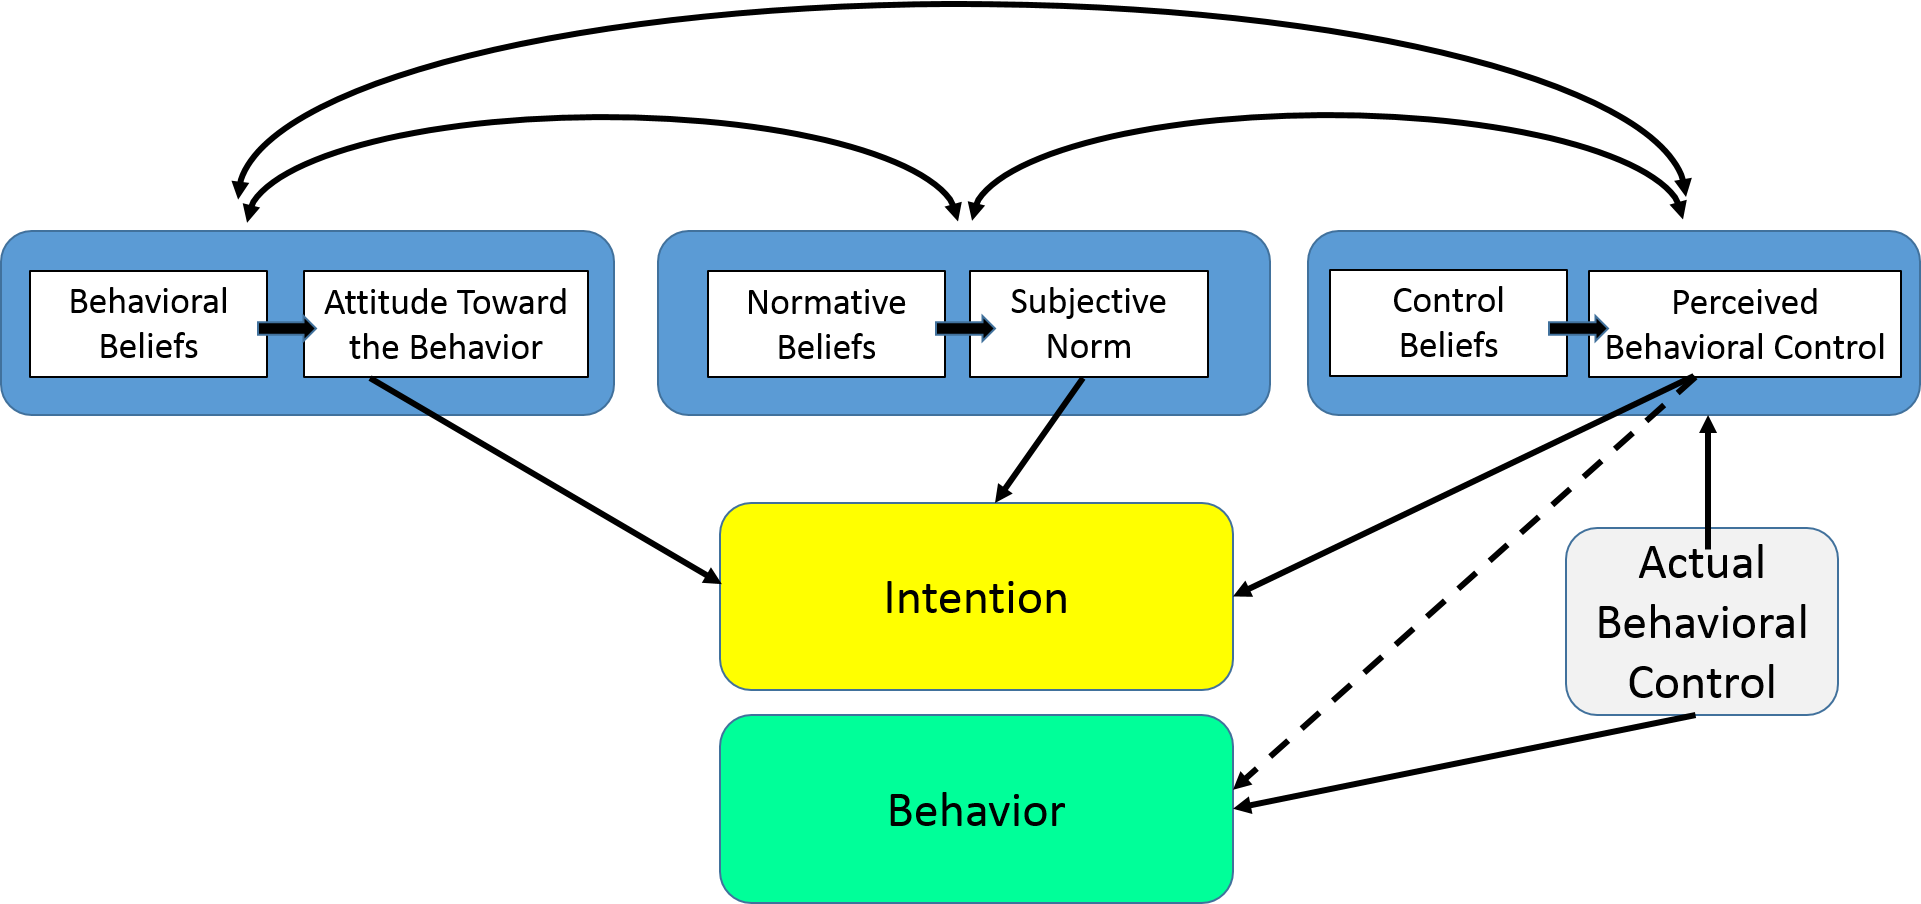 Behavioral change models this construct of the theory was added later and created the shift from the theory of reasoned action to the theory of planned behavior malvernweather Choice Image